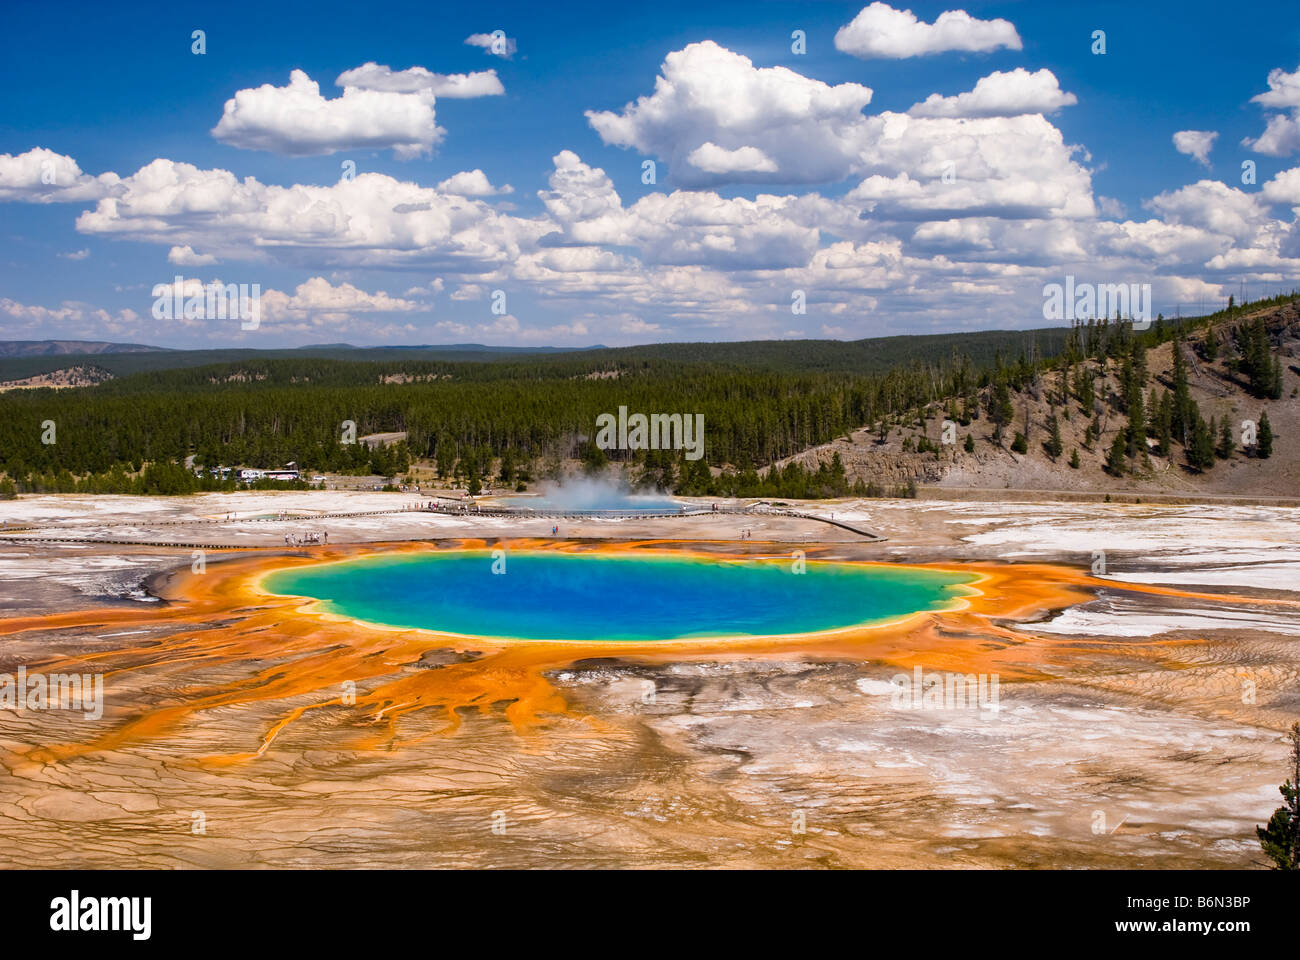 Un alto ángulo de visualización de Grand Prismatic Springs, el Parque Nacional Yellowstone, Wyoming, EE.UU. Imagen De Stock